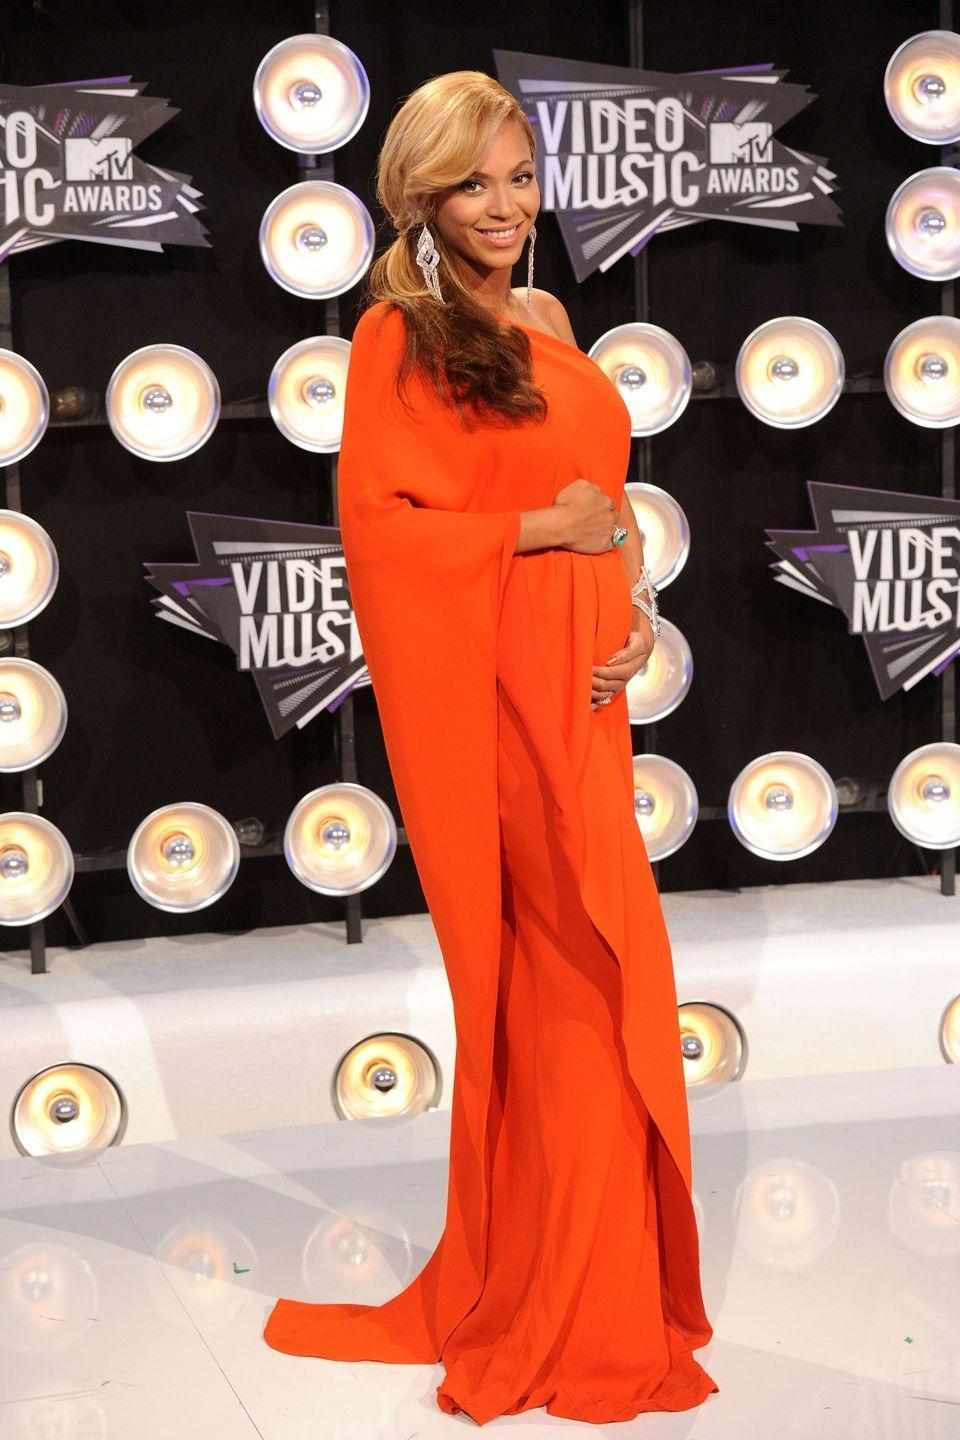 <p>Beyoncé takes the floor-length maternity trend to glamorous territory (naturally), opting for an orange one-shoulder gown that made her look like a brilliant Grecian goddess at the 2011 MTV Video Music Awards.</p>